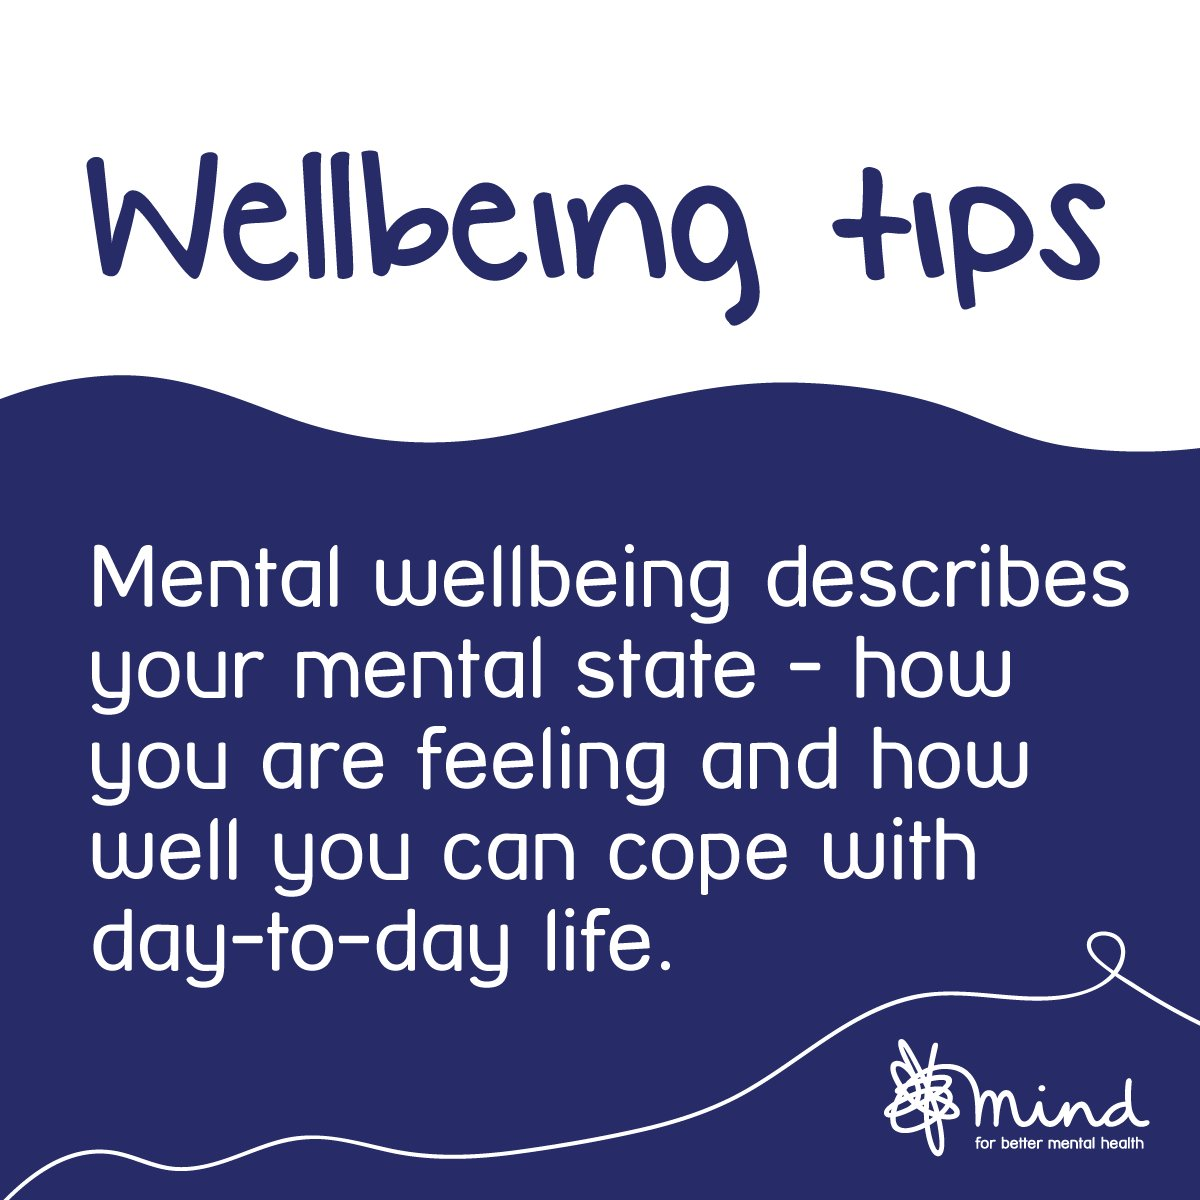 What are your top tips for staying mentally happy and healthy?